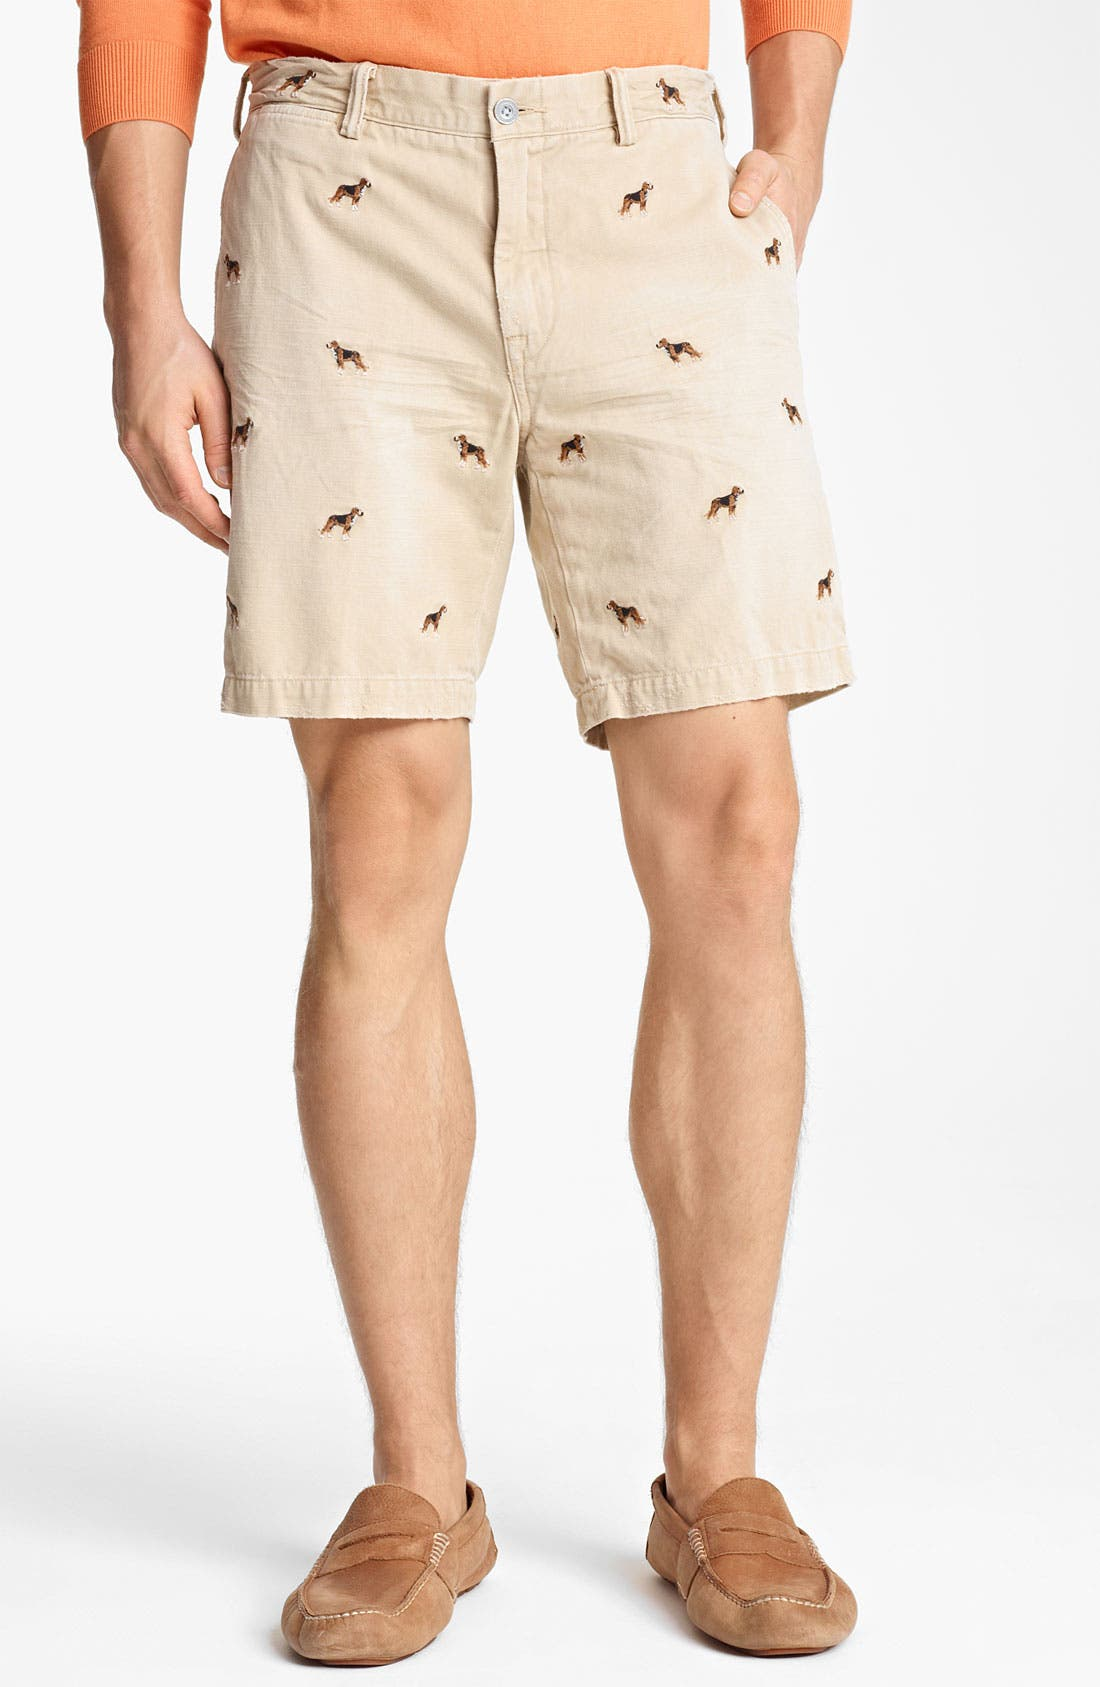 Main Image - Polo Ralph Lauren 'Maritime Beagle' Chino Shorts